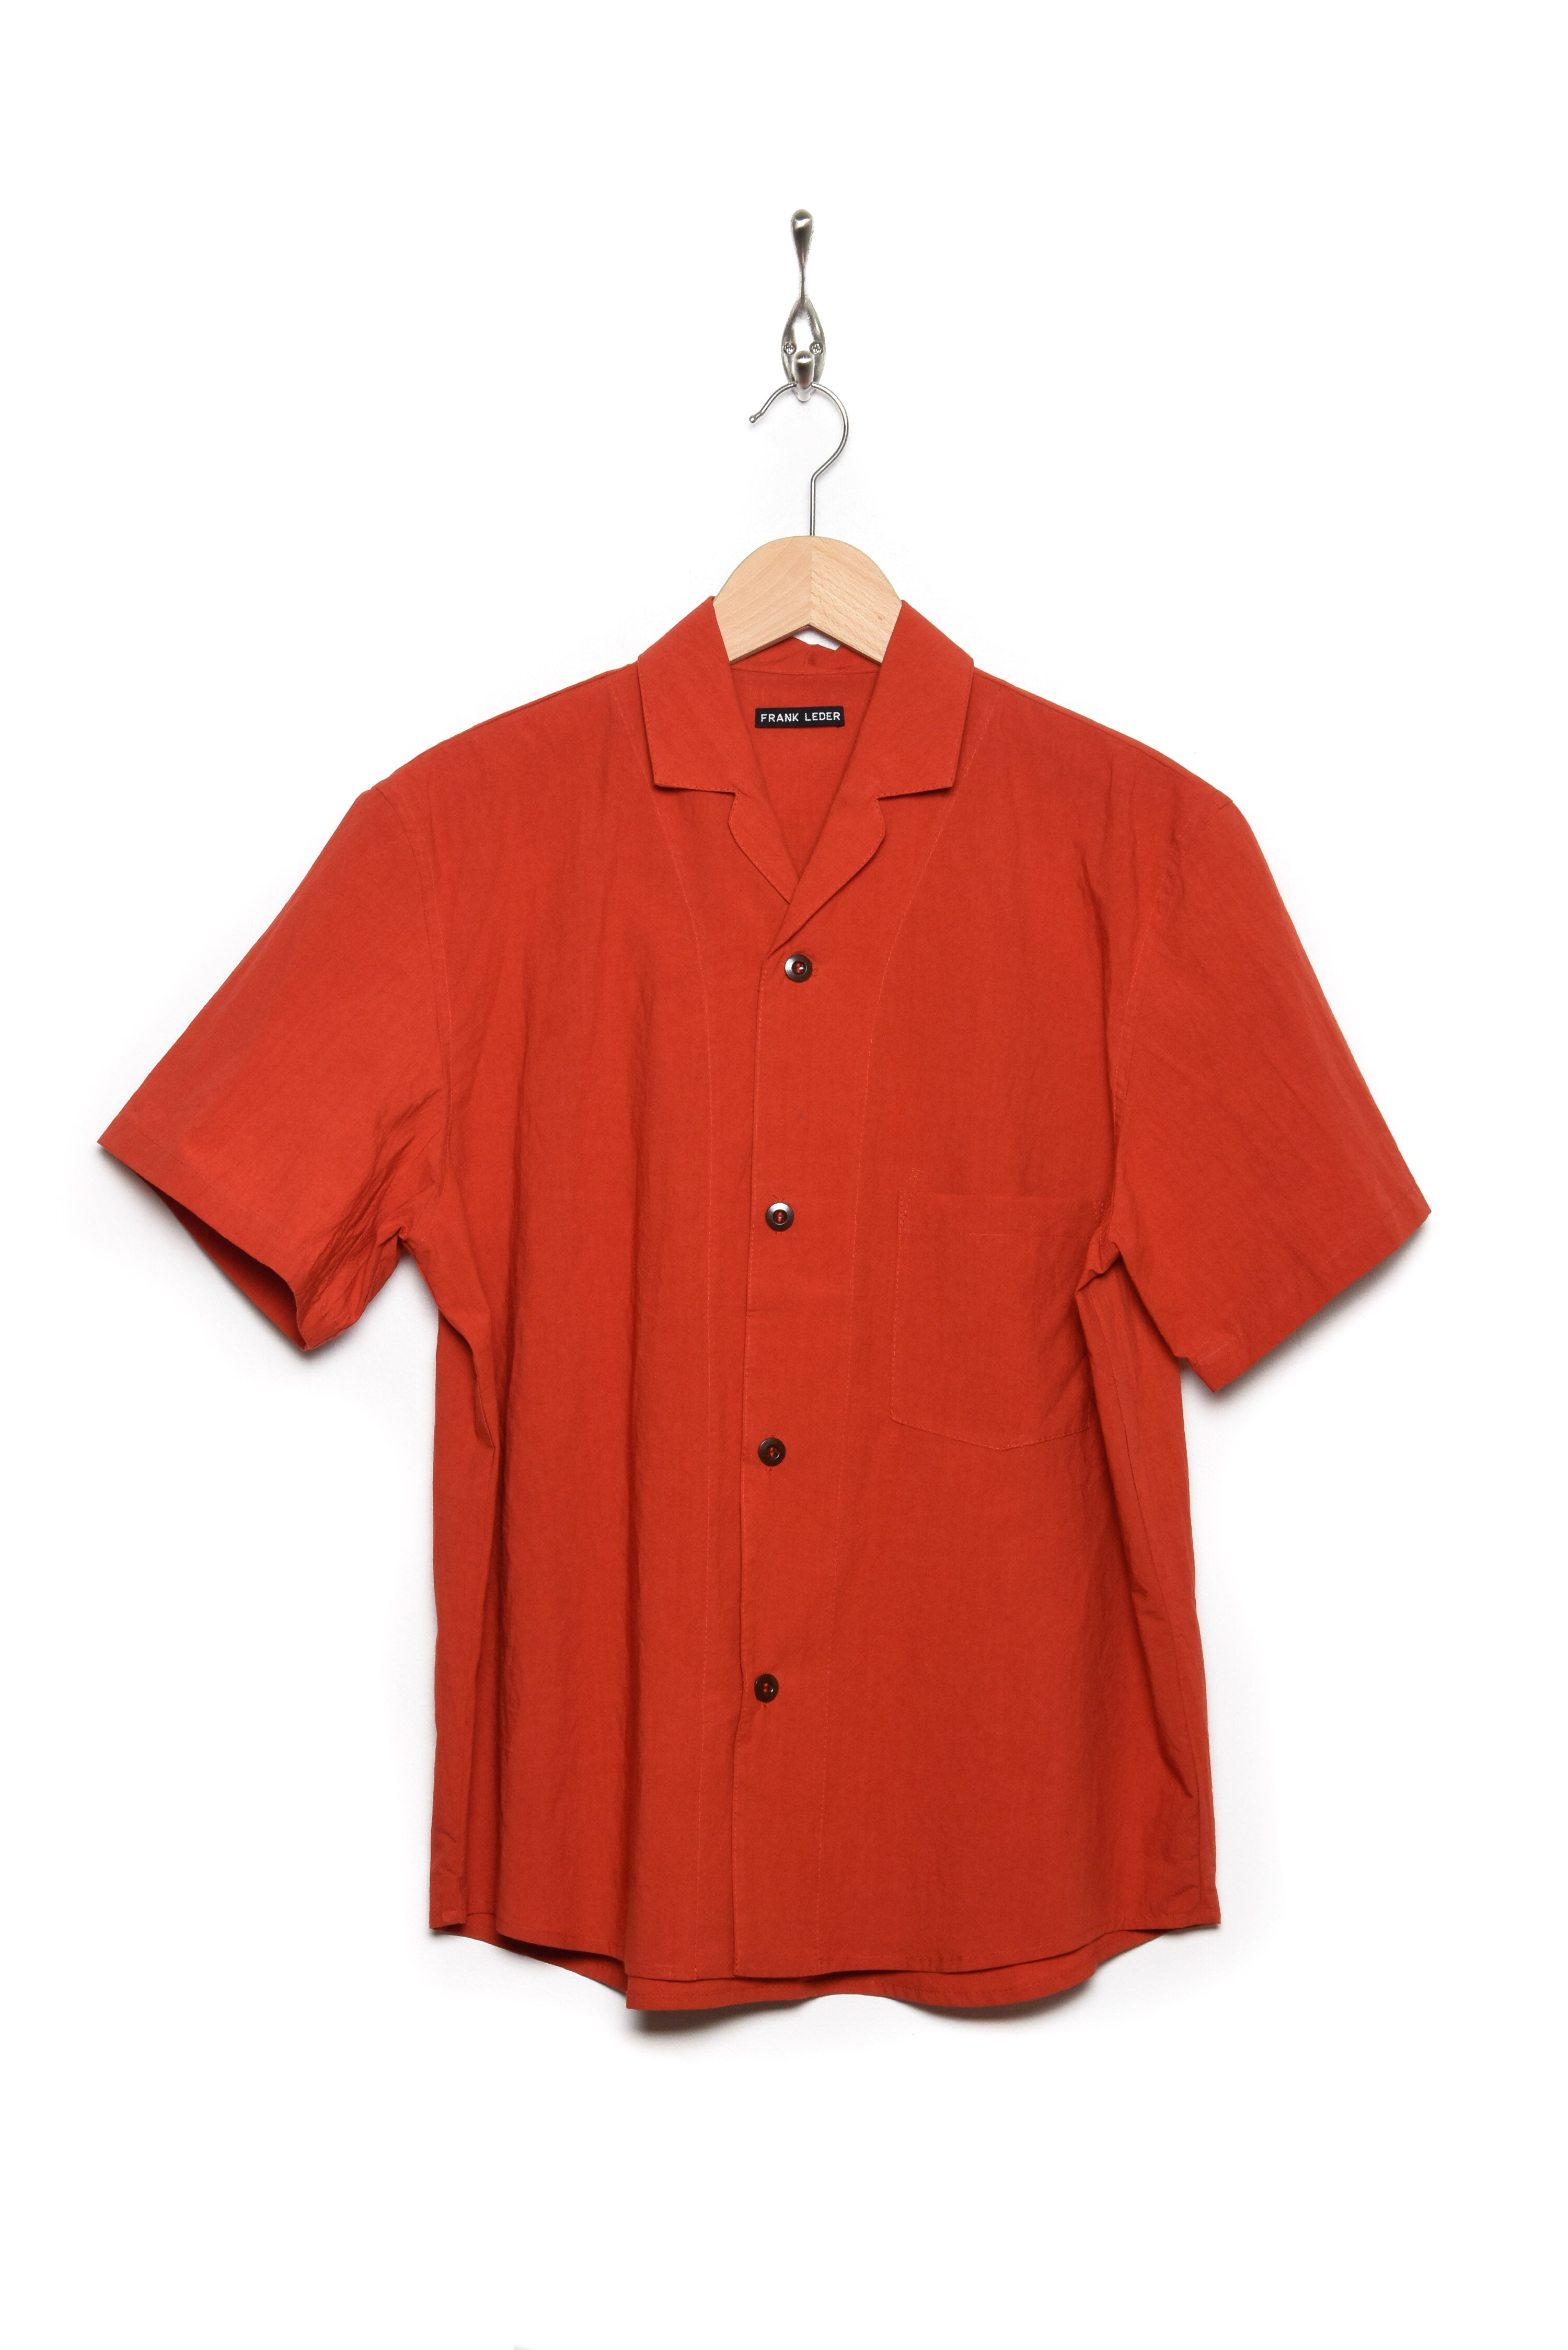 Frank Leder Shirt shortsleeves red